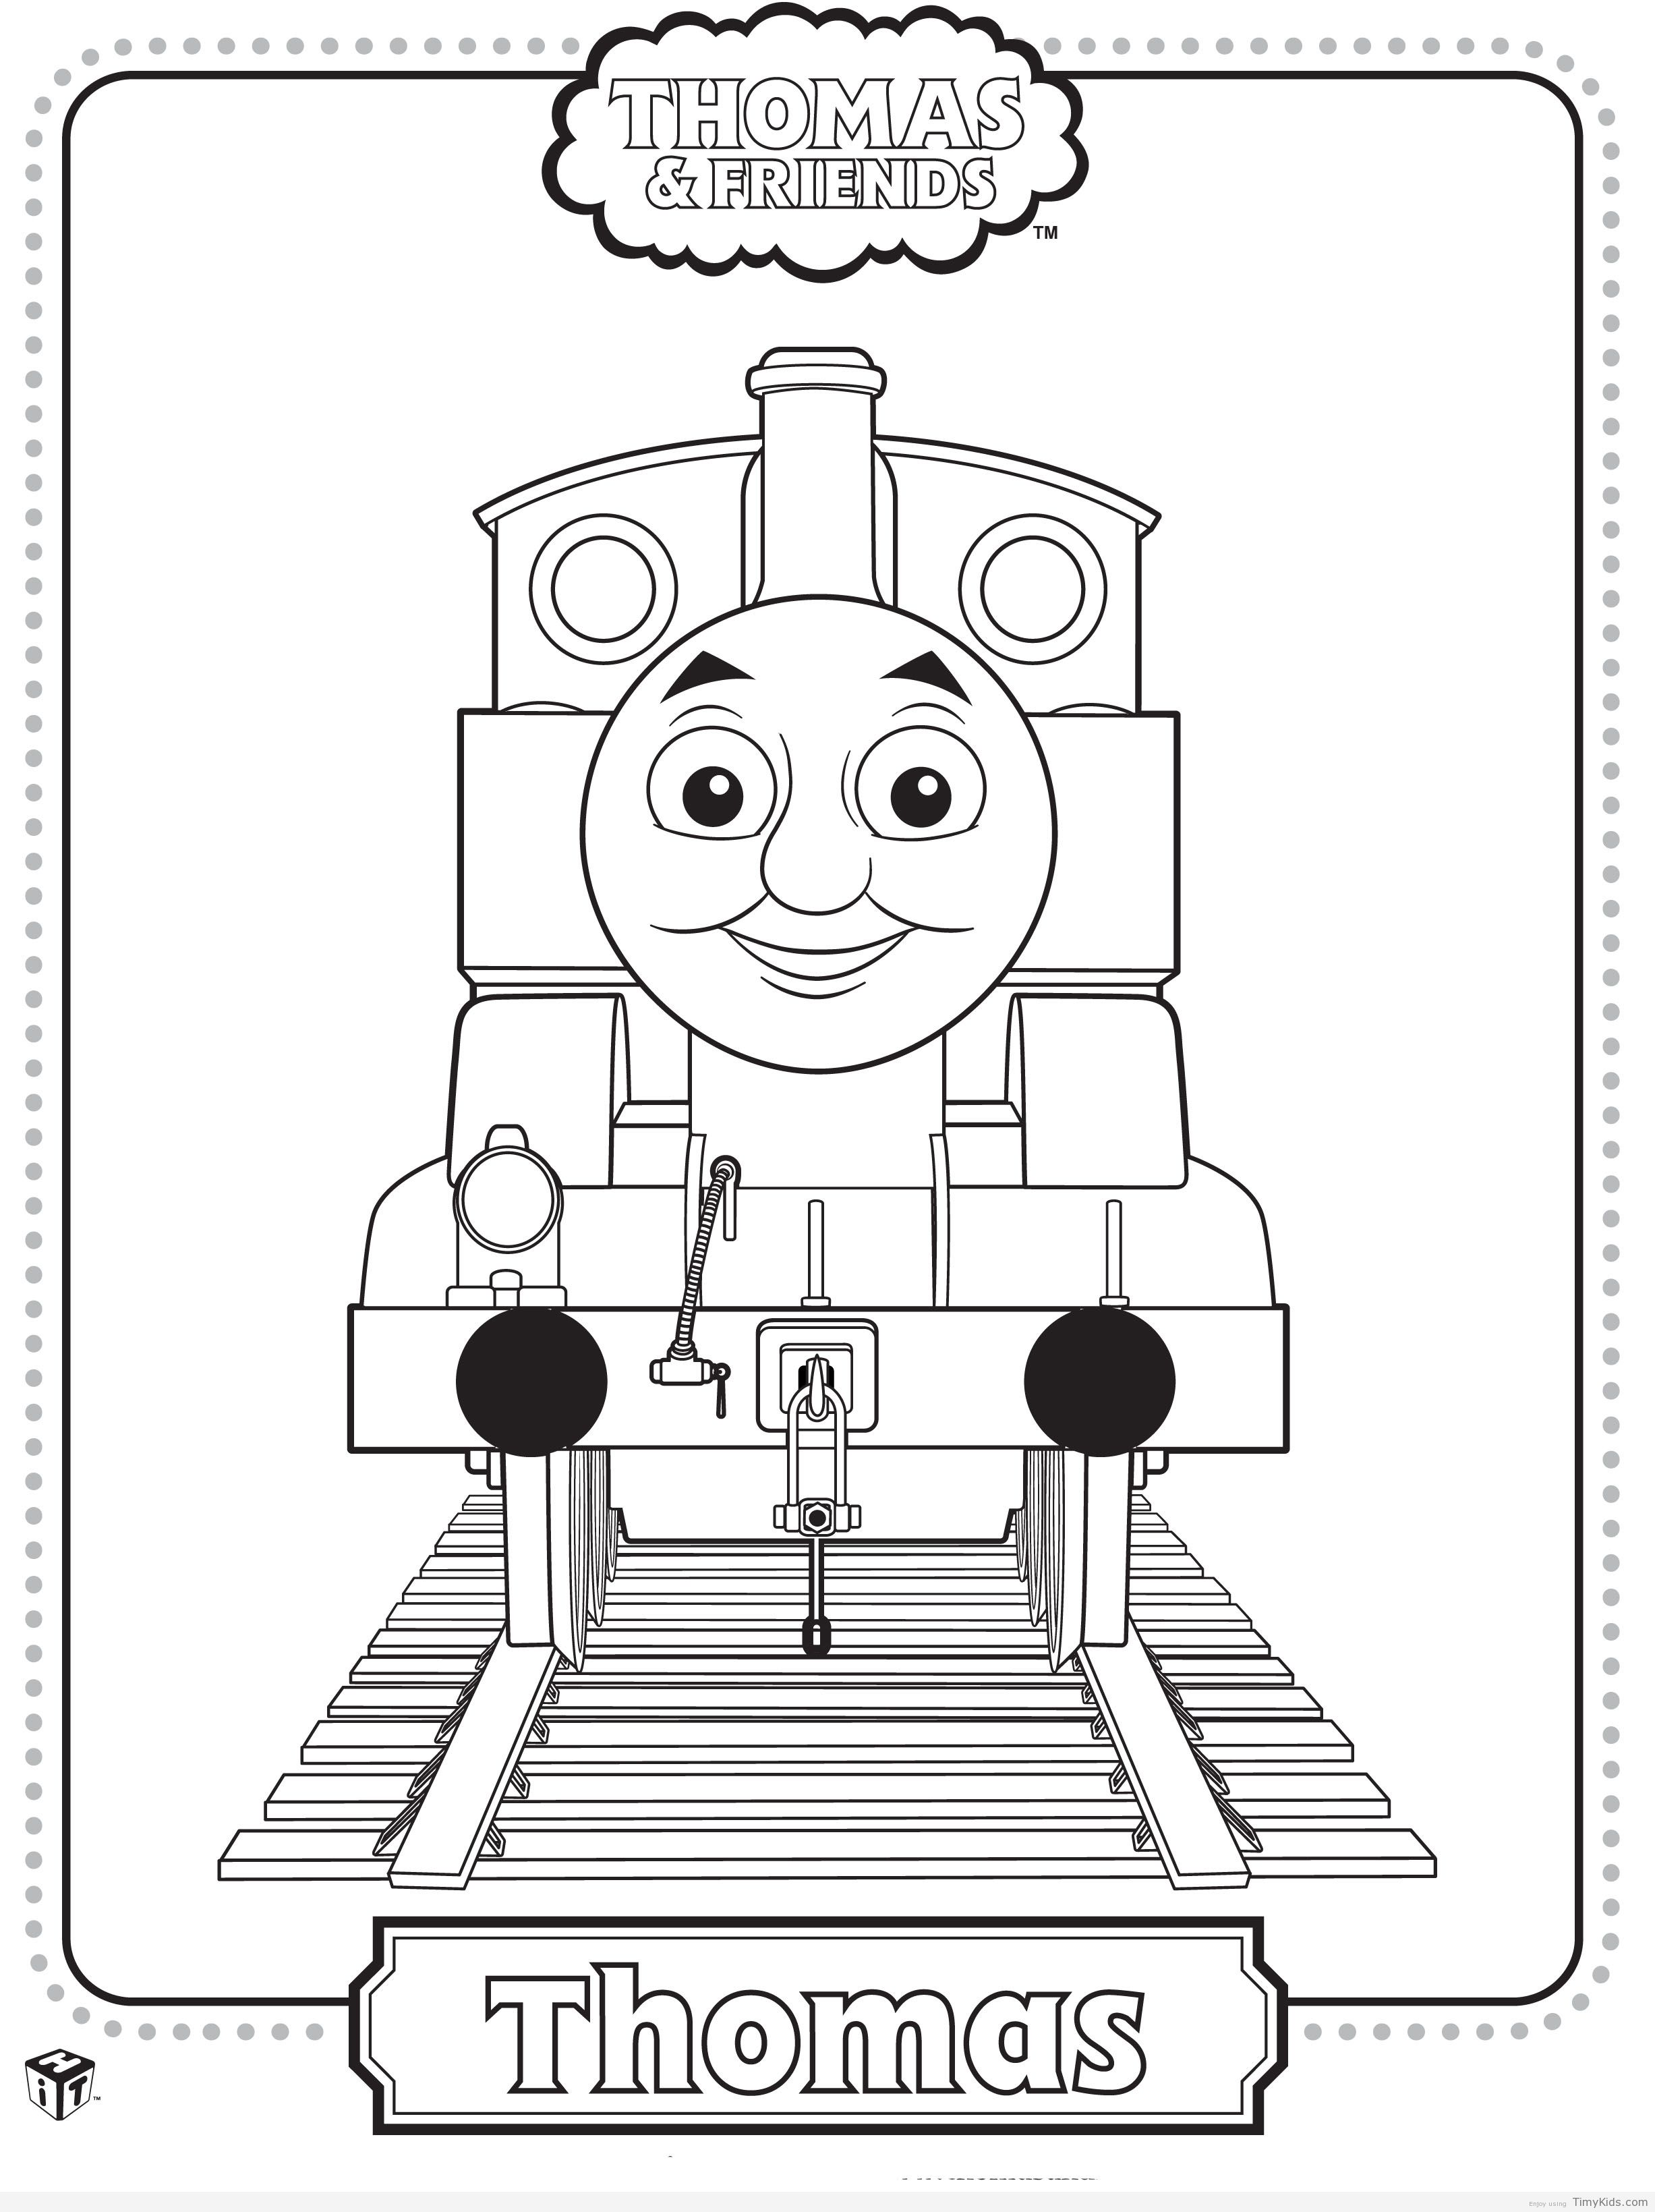 http://timykids.com/printable-thomas-friends-coloring-pages.html ...